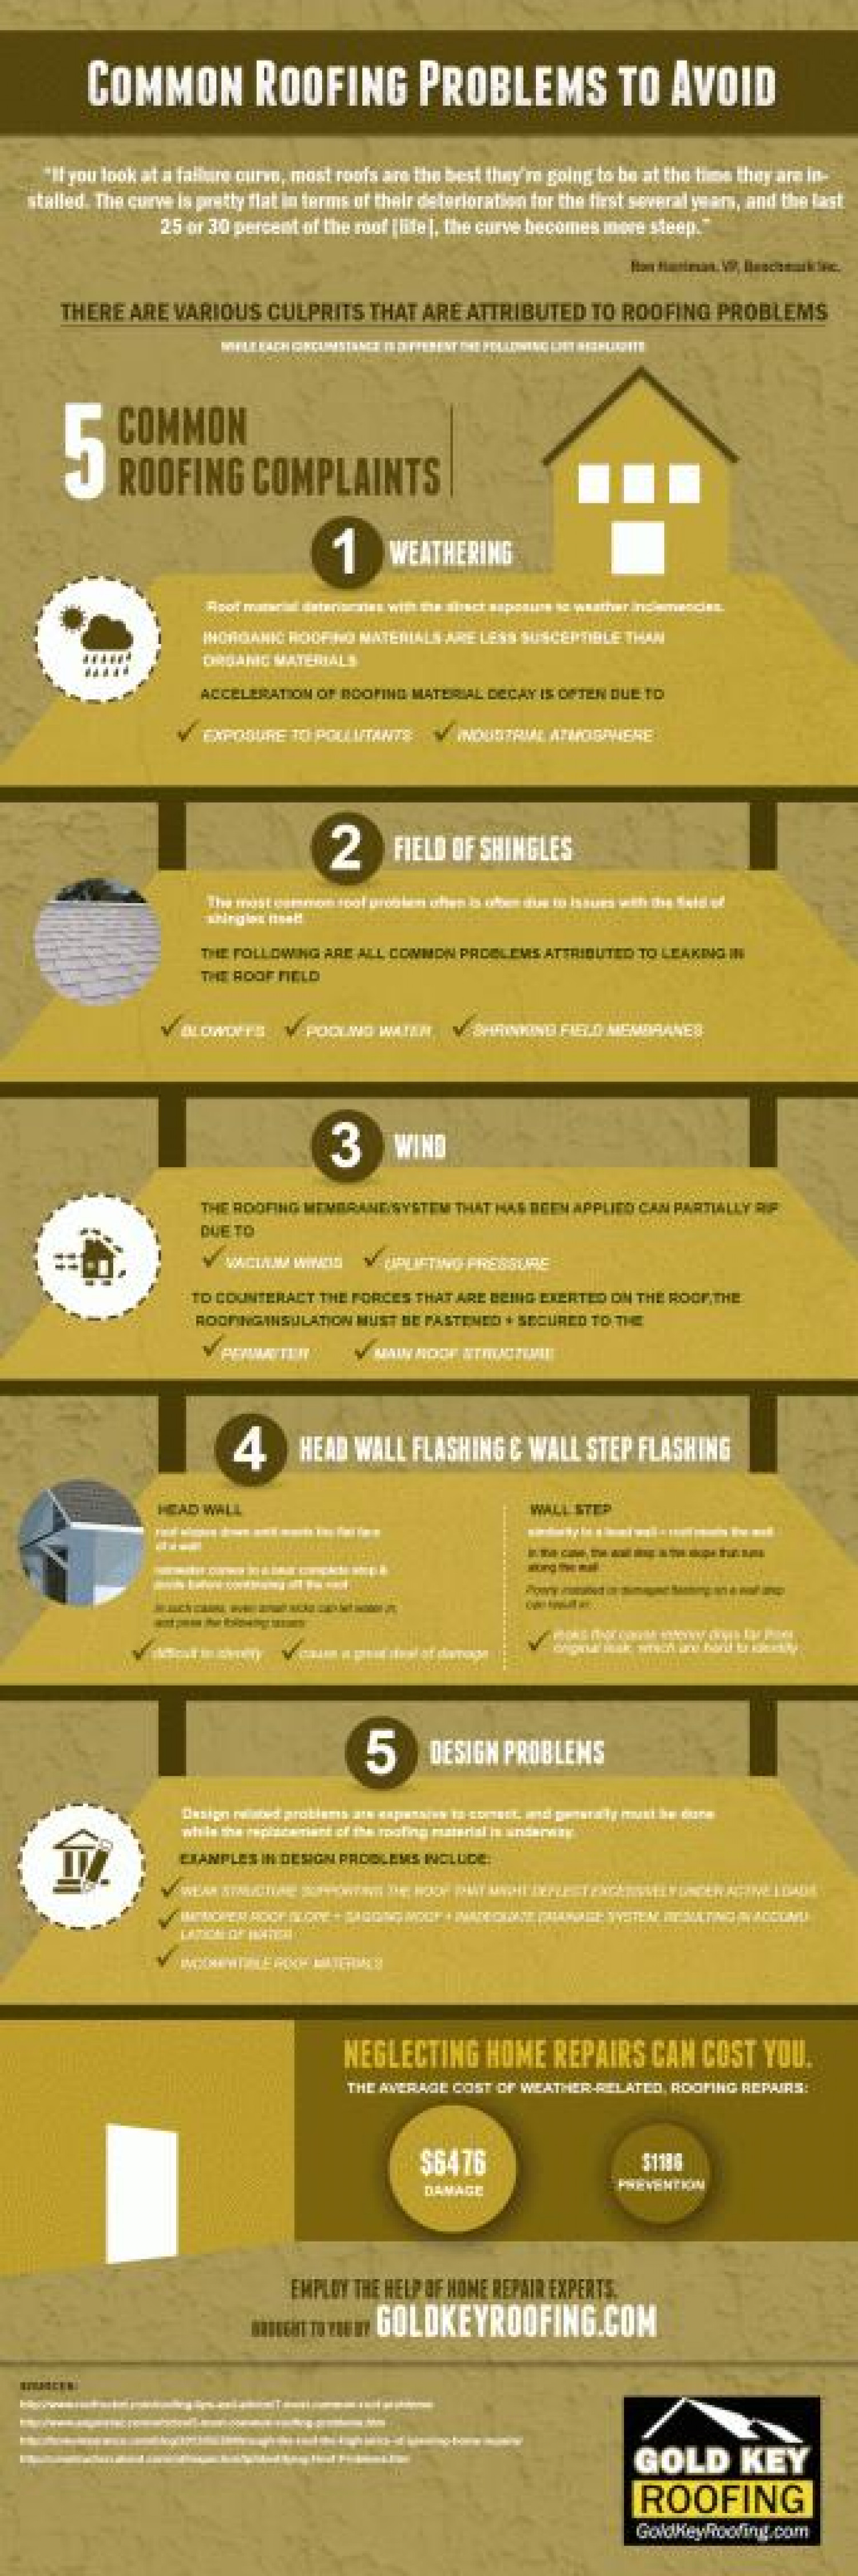 Common Roofing Problems to Avoid Infographic